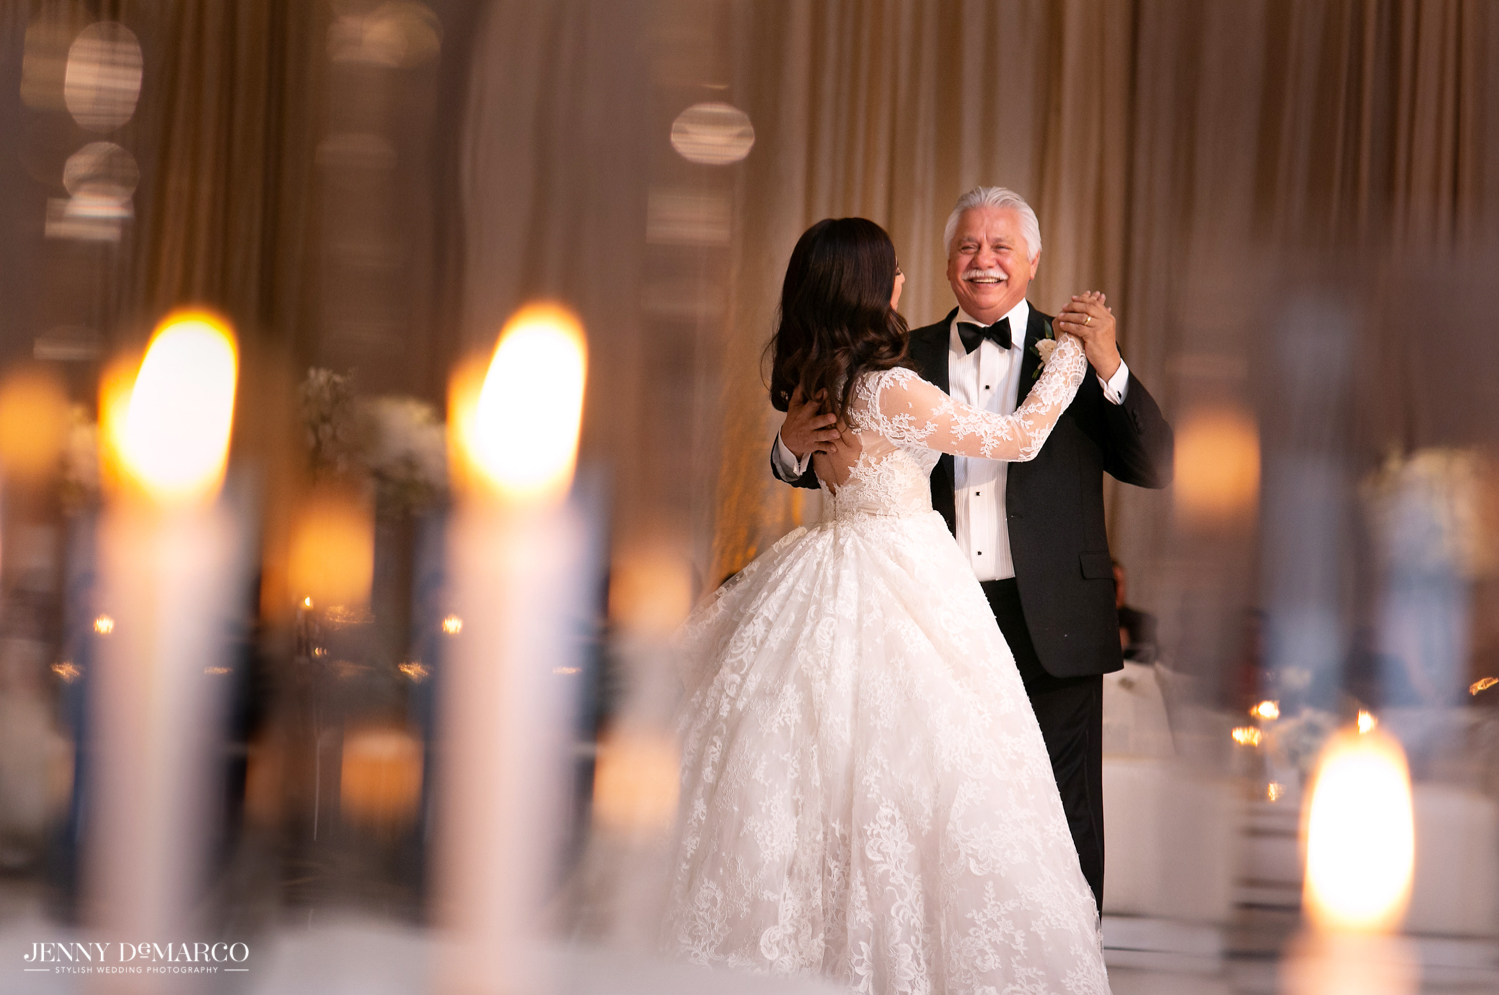 father of the bride dancing with his daughter at the wedding reception